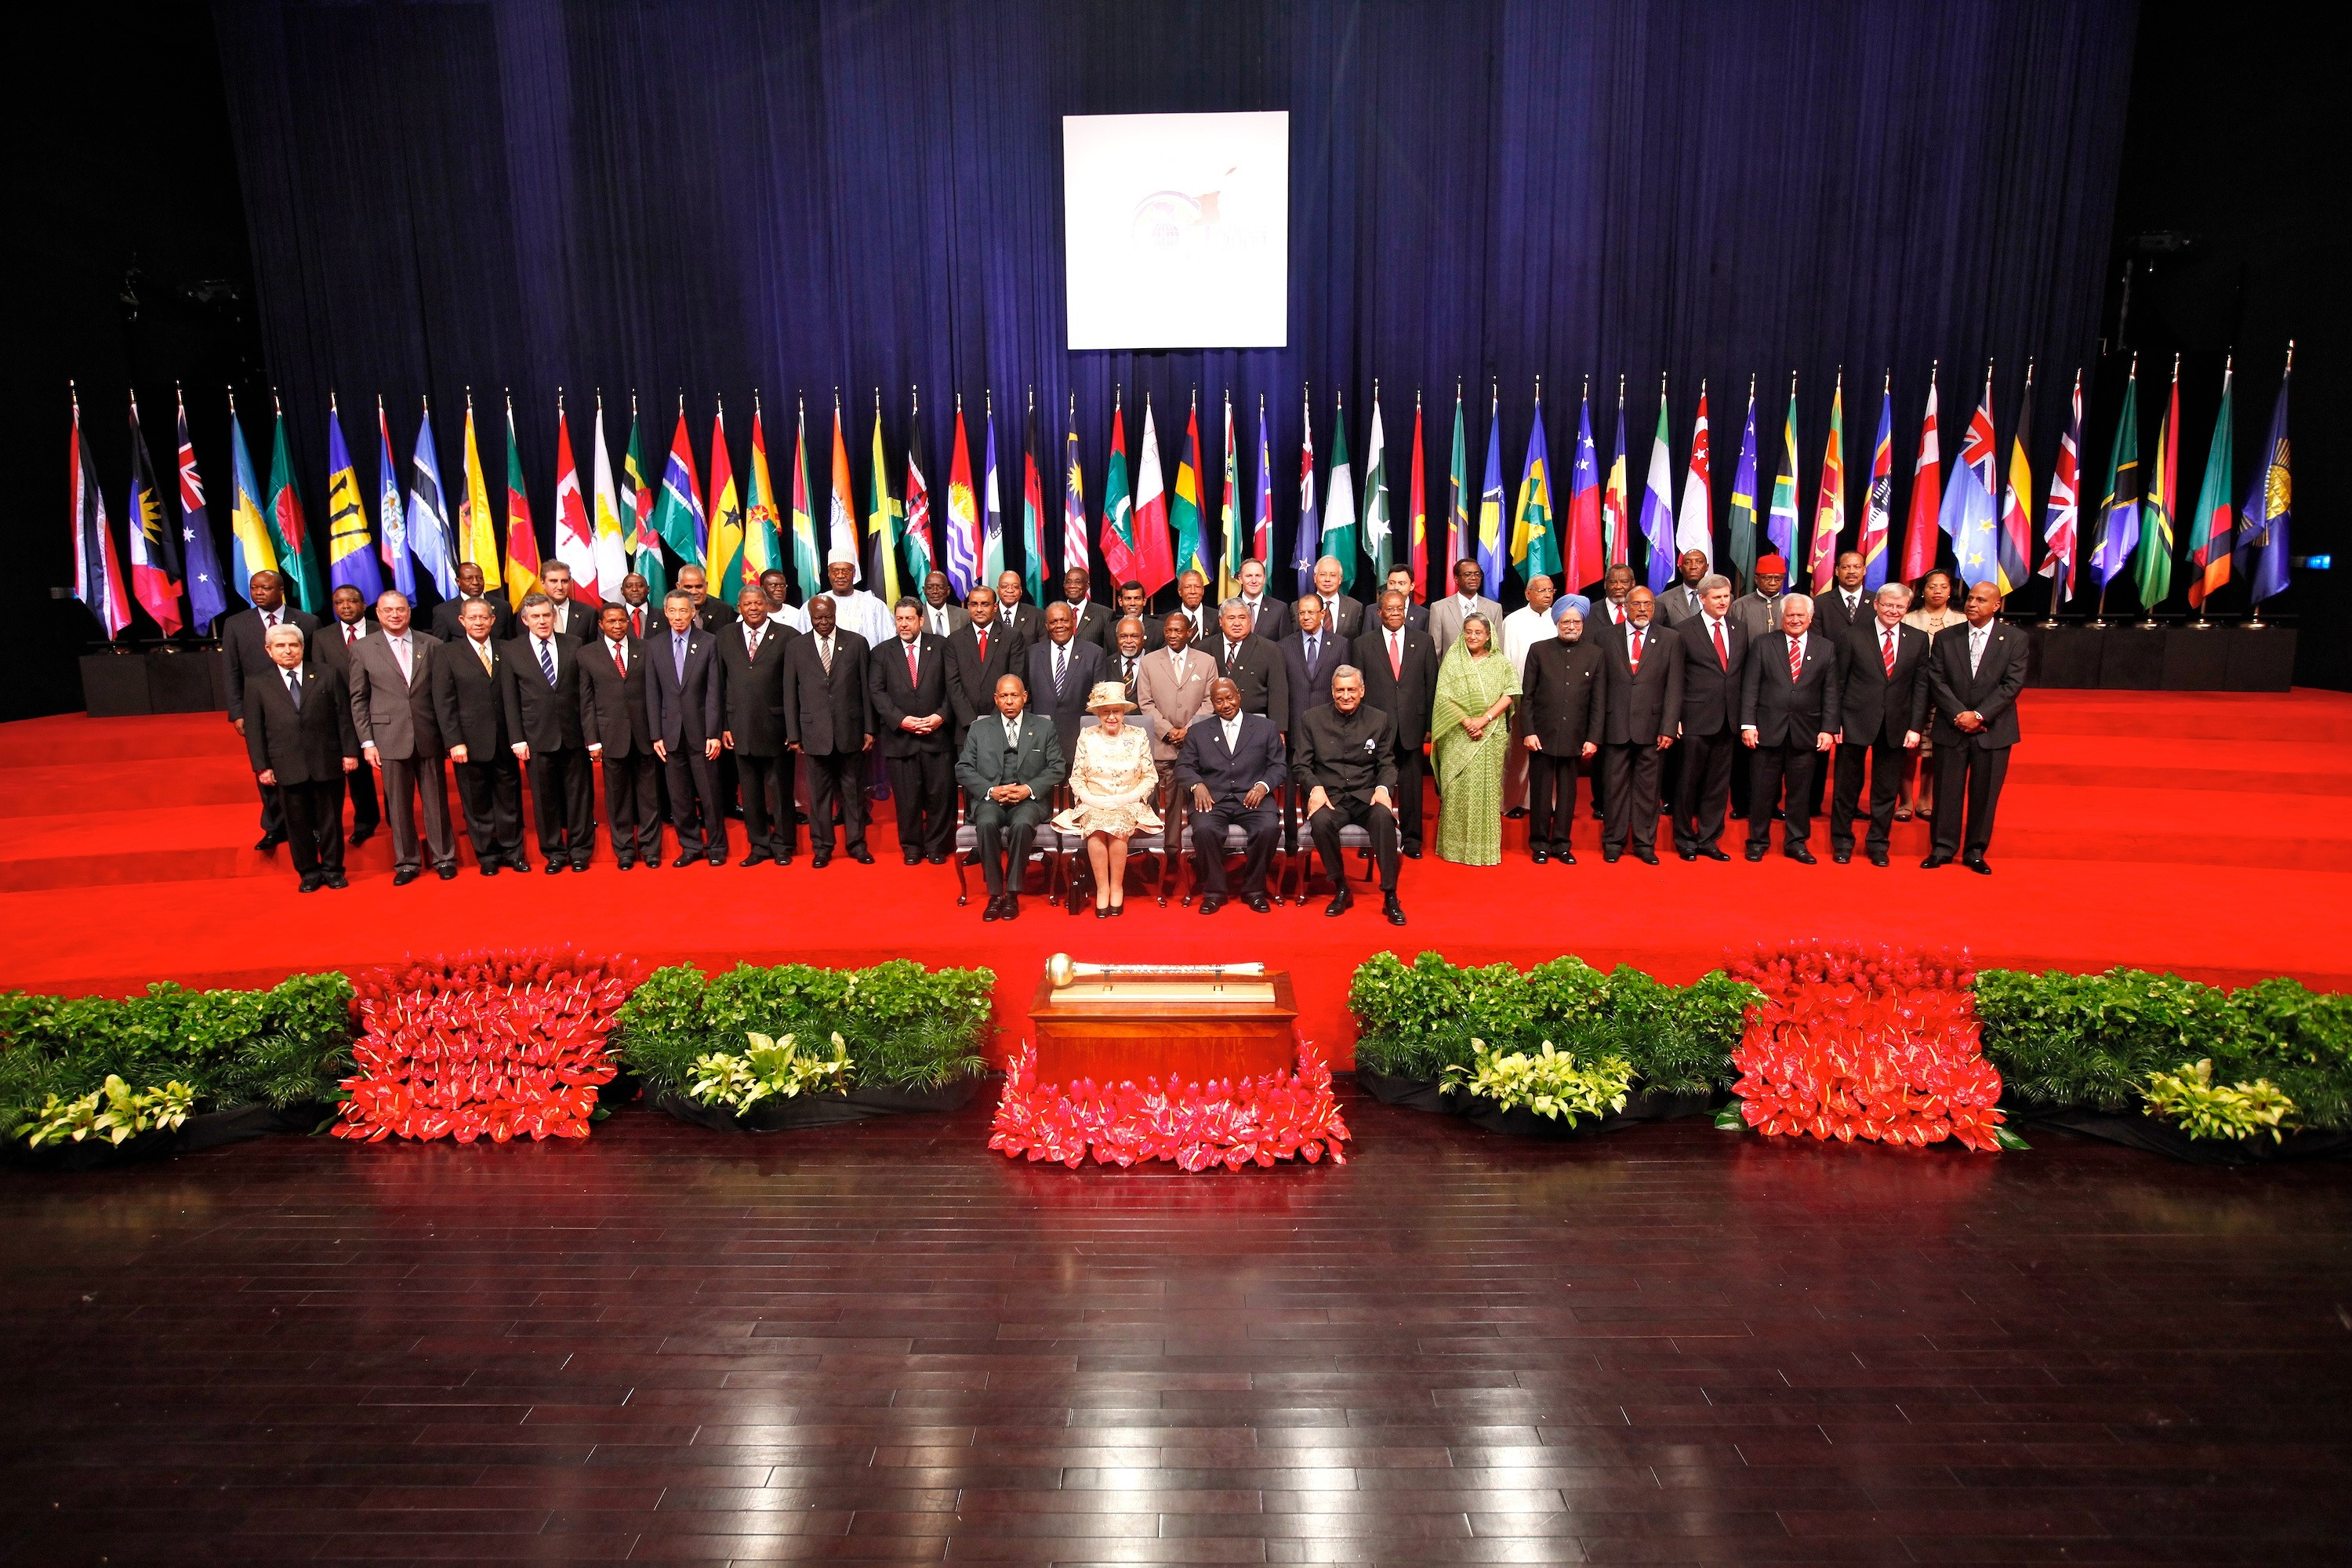 http://solarexpert.files.wordpress.com/2009/11/chogm2009heads.jpg